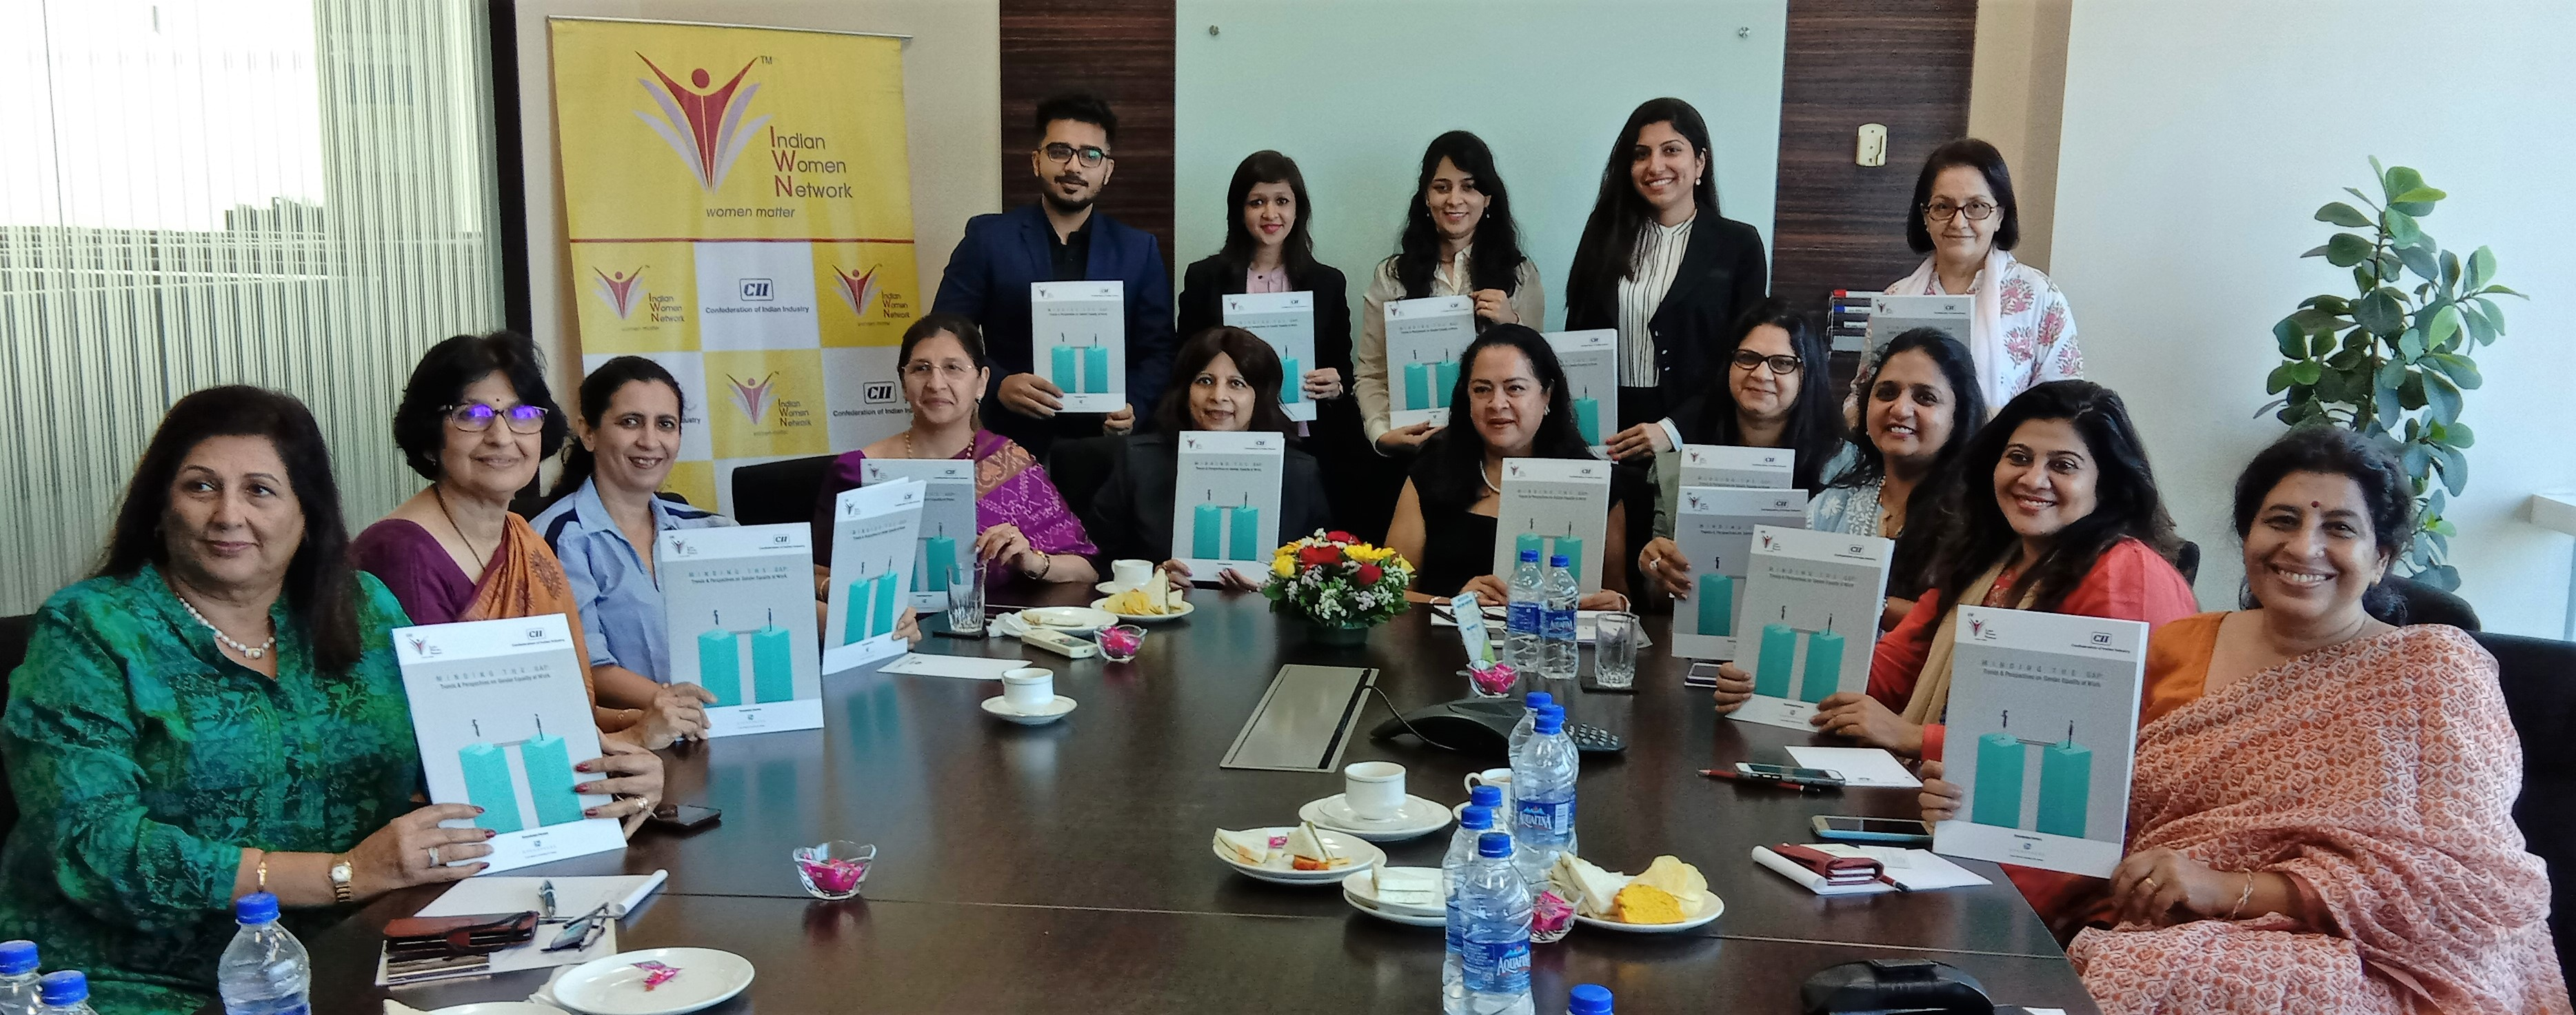 CII Indian Women Network Session on Minding the Gap